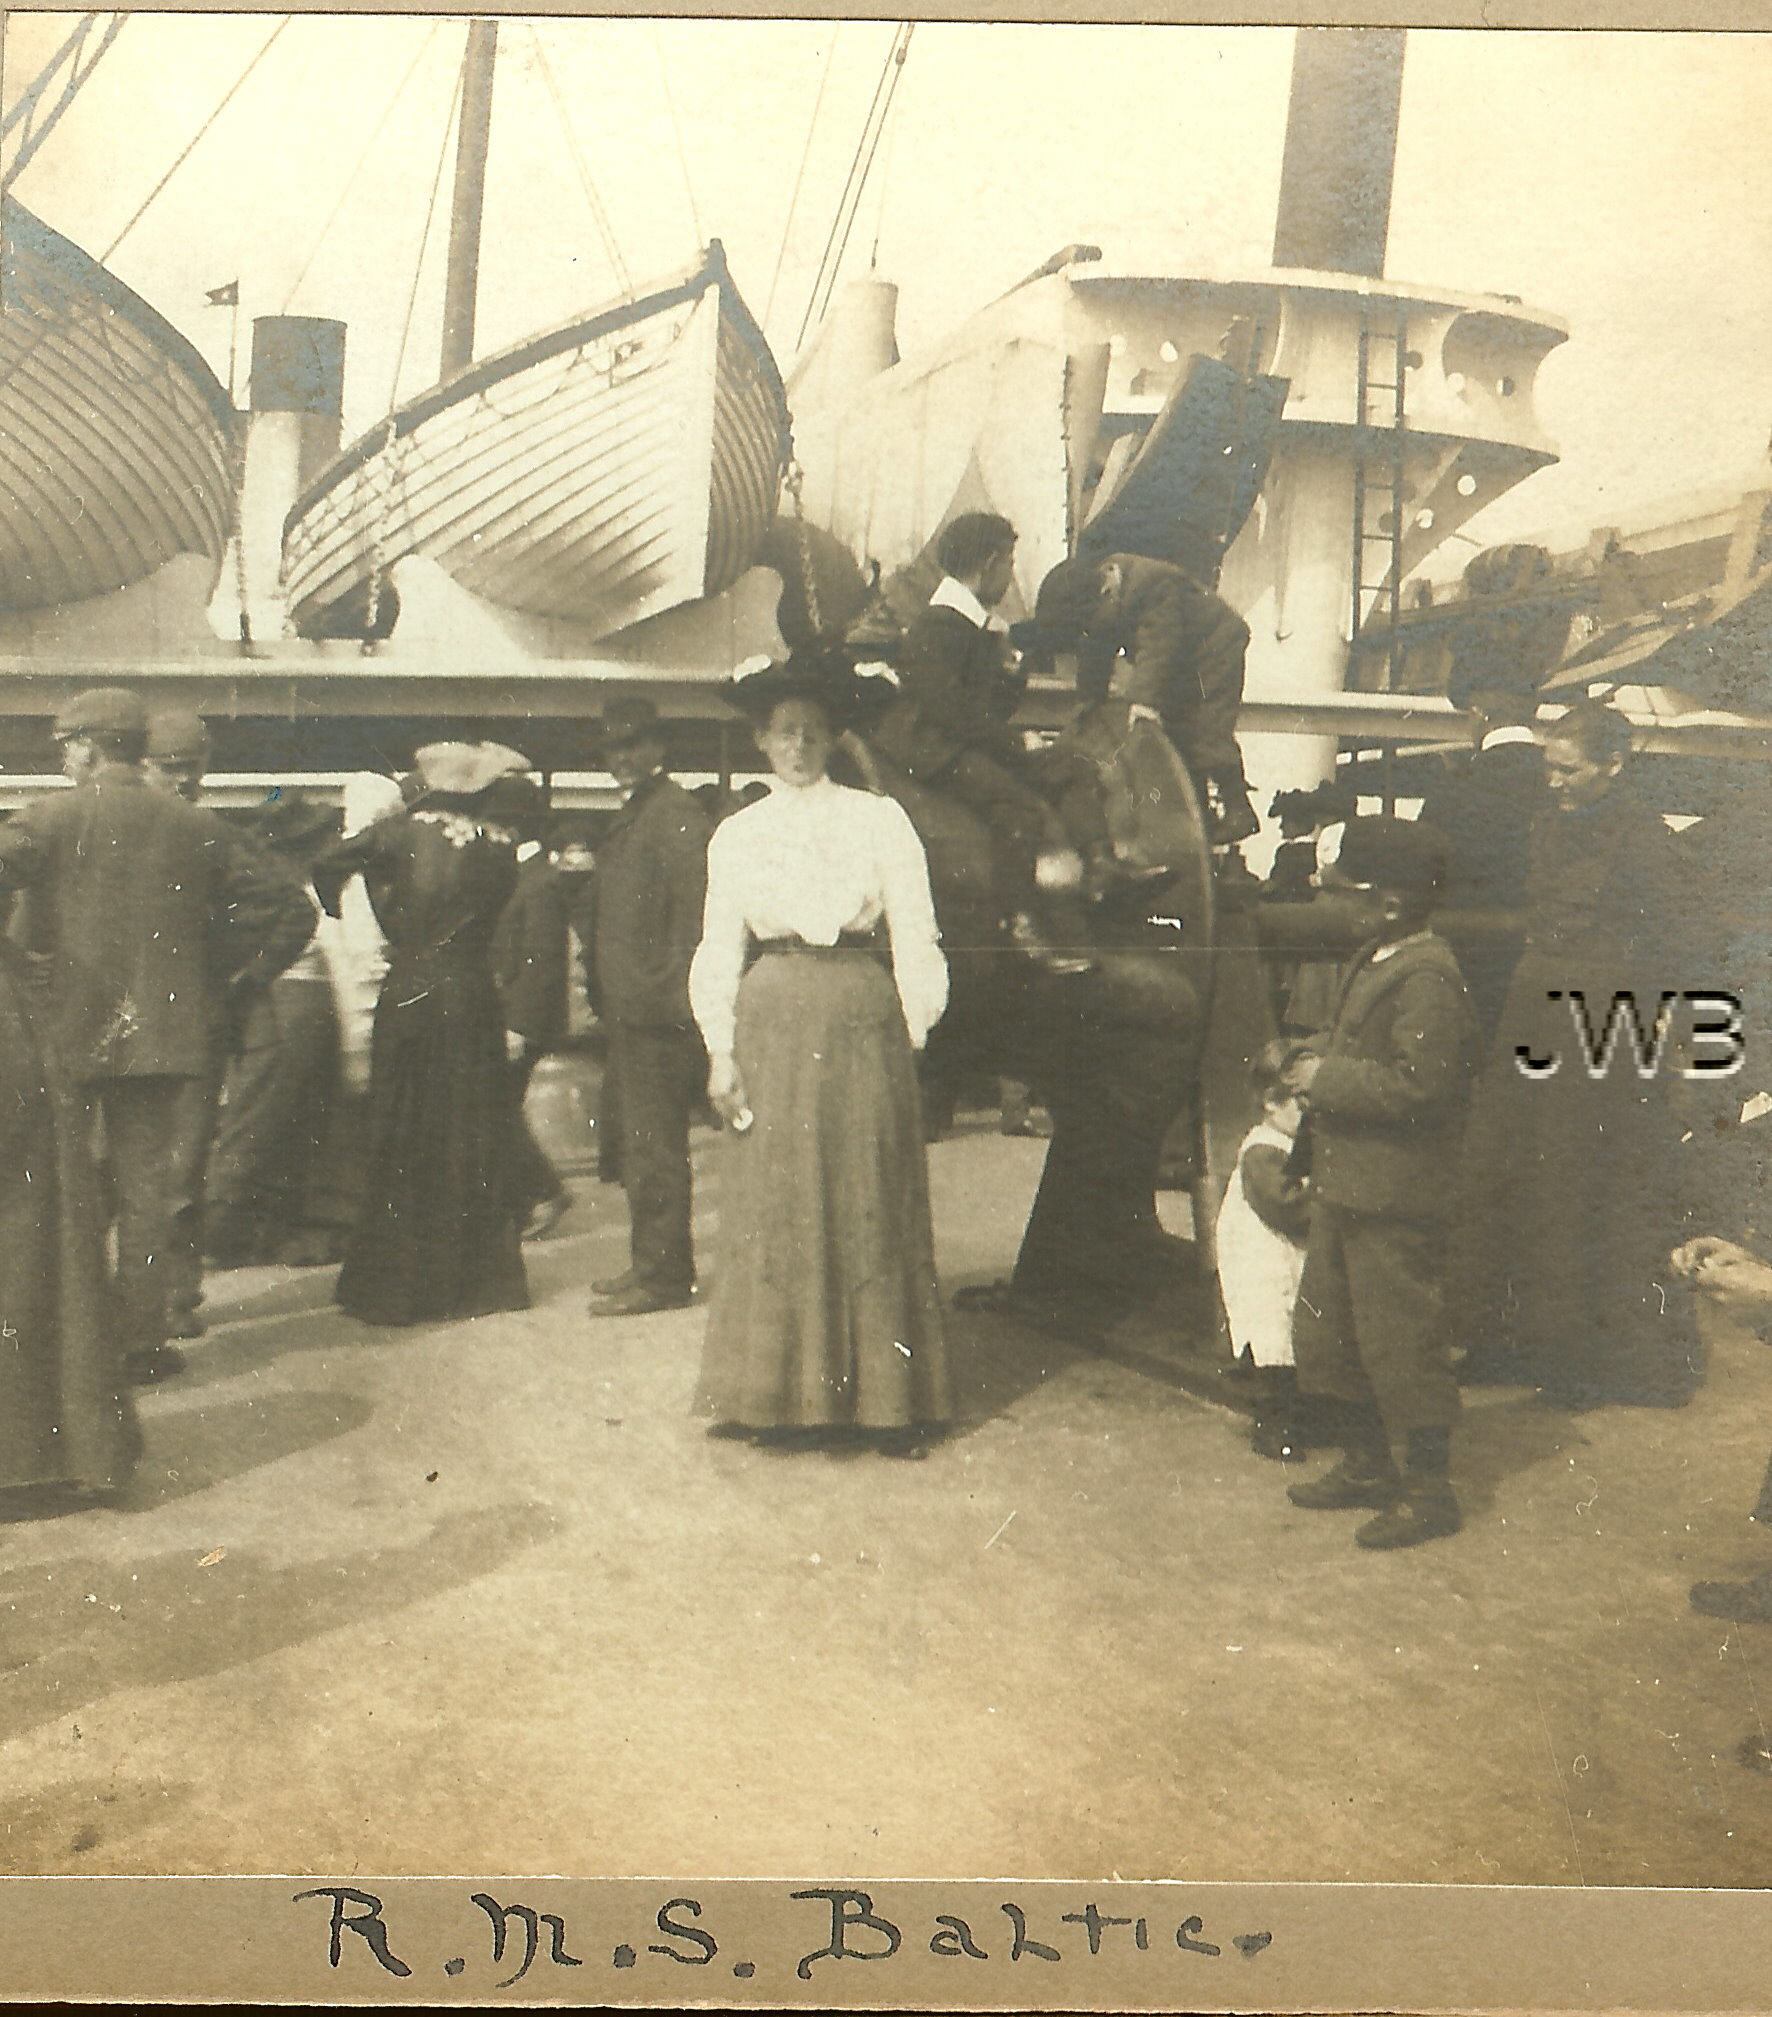 Passengers of RMS Baltic, on deck during 1904 voyage.  Rare stereographic view property of Janice W. Brown